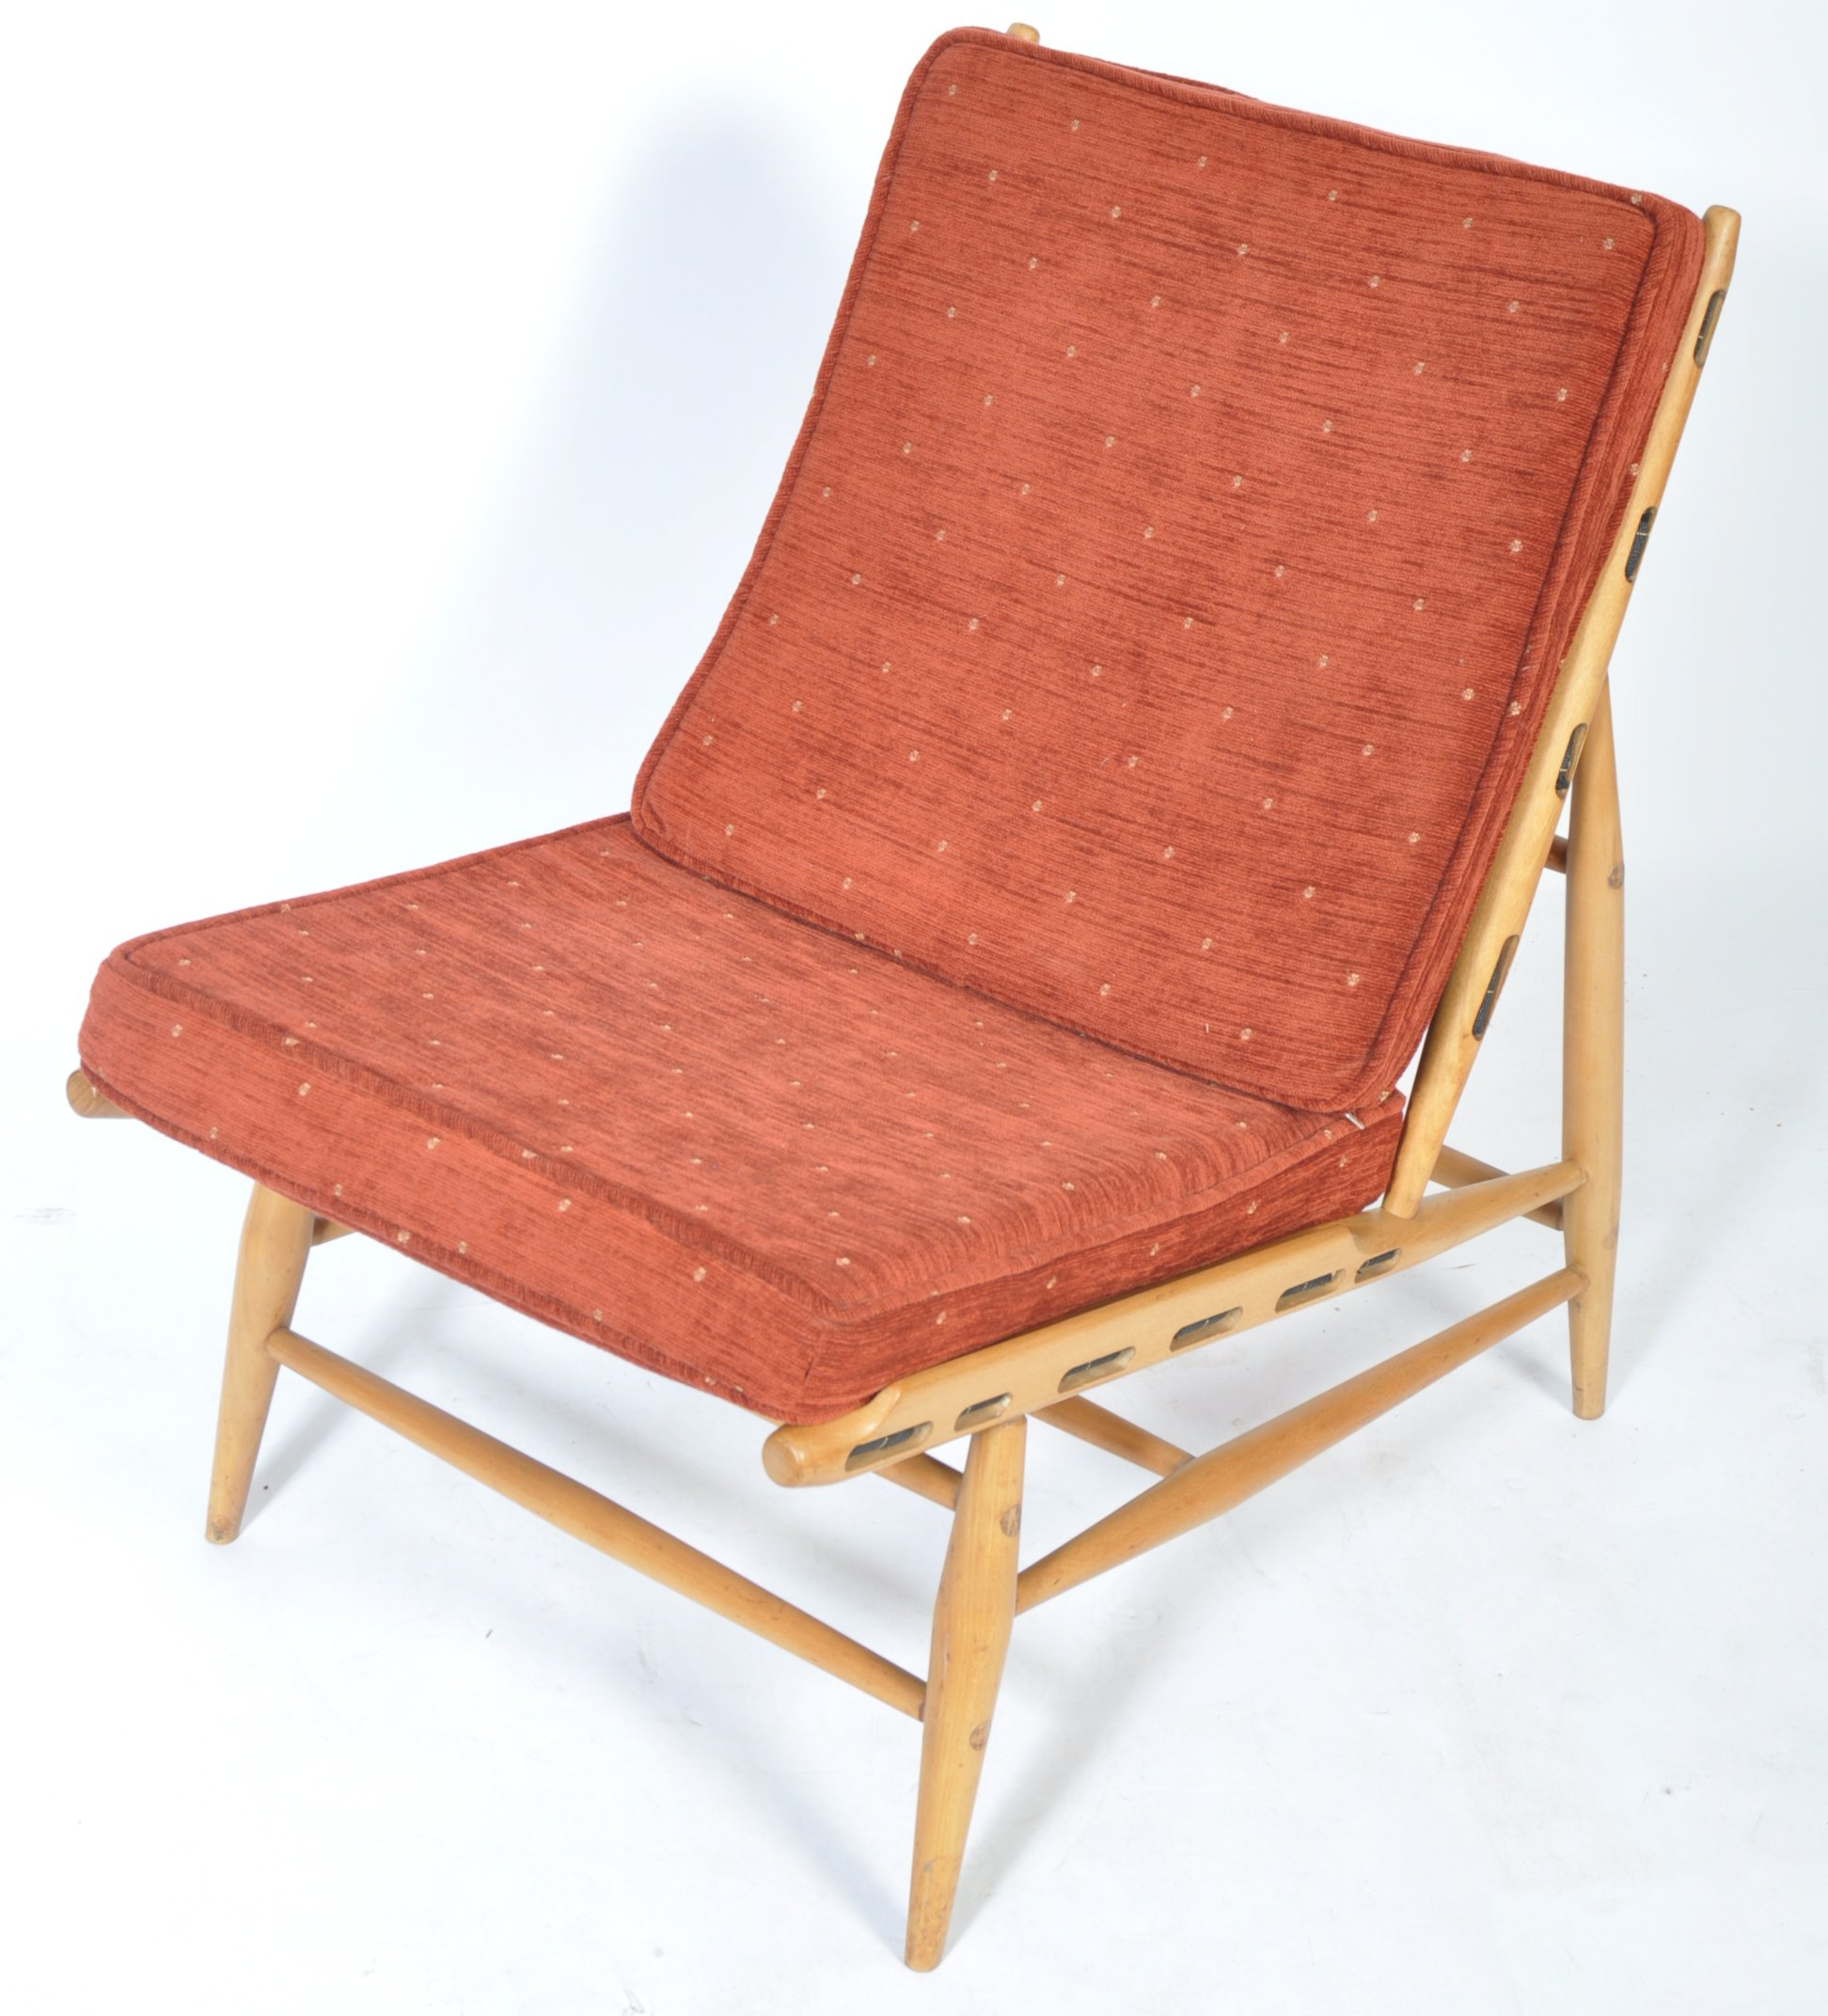 Lot 23 - ERCOL VINTAGE MODEL 427 EASY LOUNGE CHAIR BY LUCIAN ERCOLANI